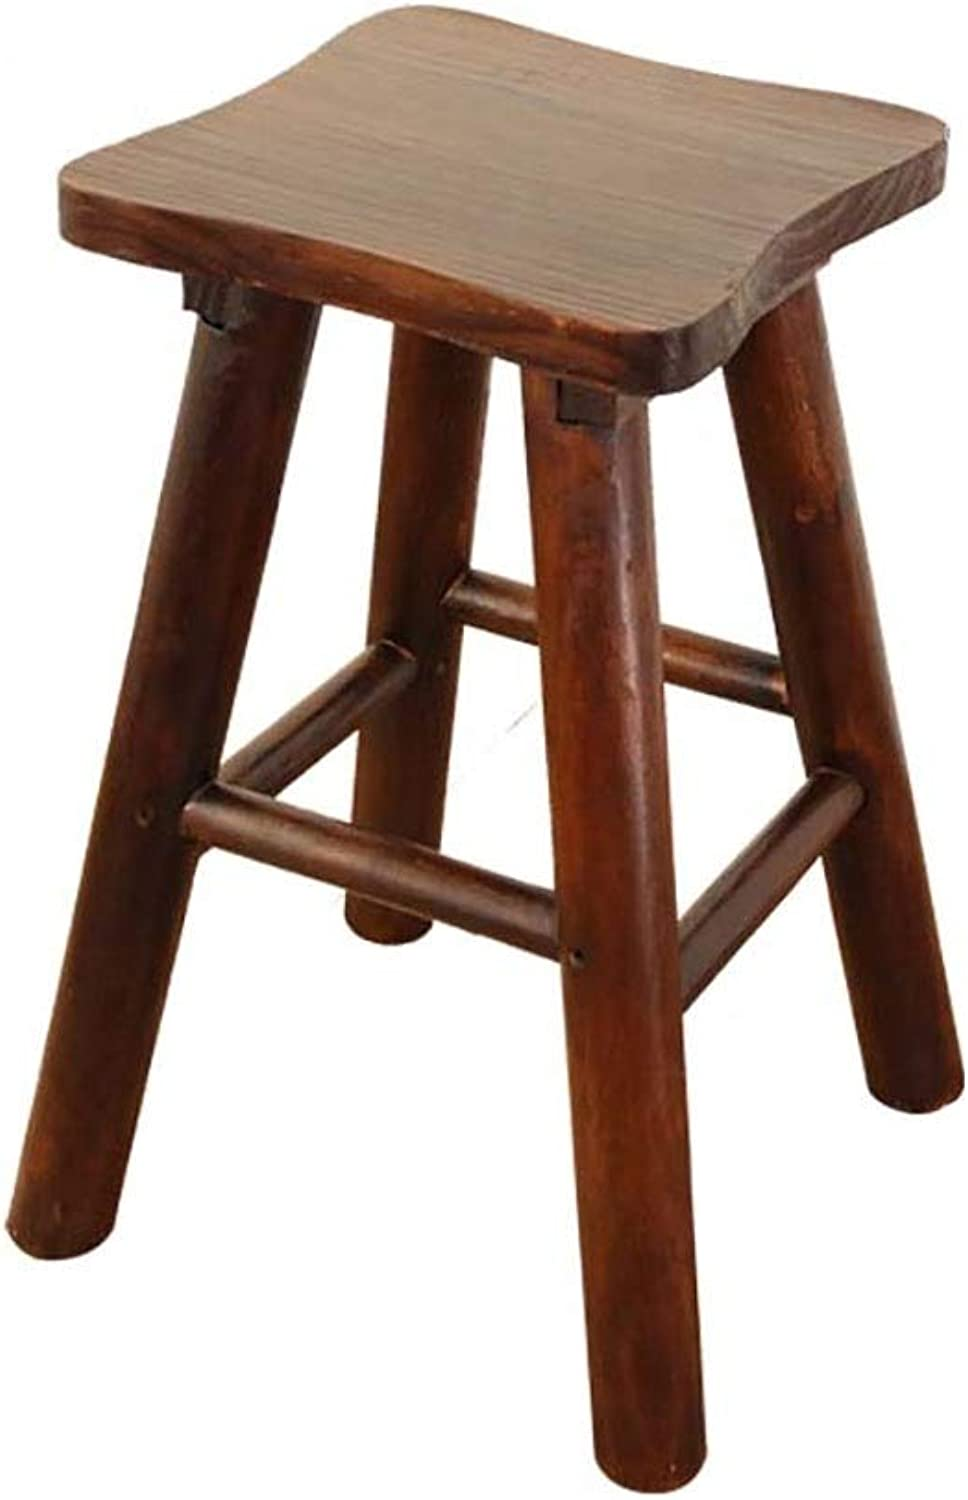 YUBINBar Chair,Bar Stool,Breakfast Bar Solid Wood Bar Stool, High Stool, Breakfast Stool (color   B, Size   55CM)